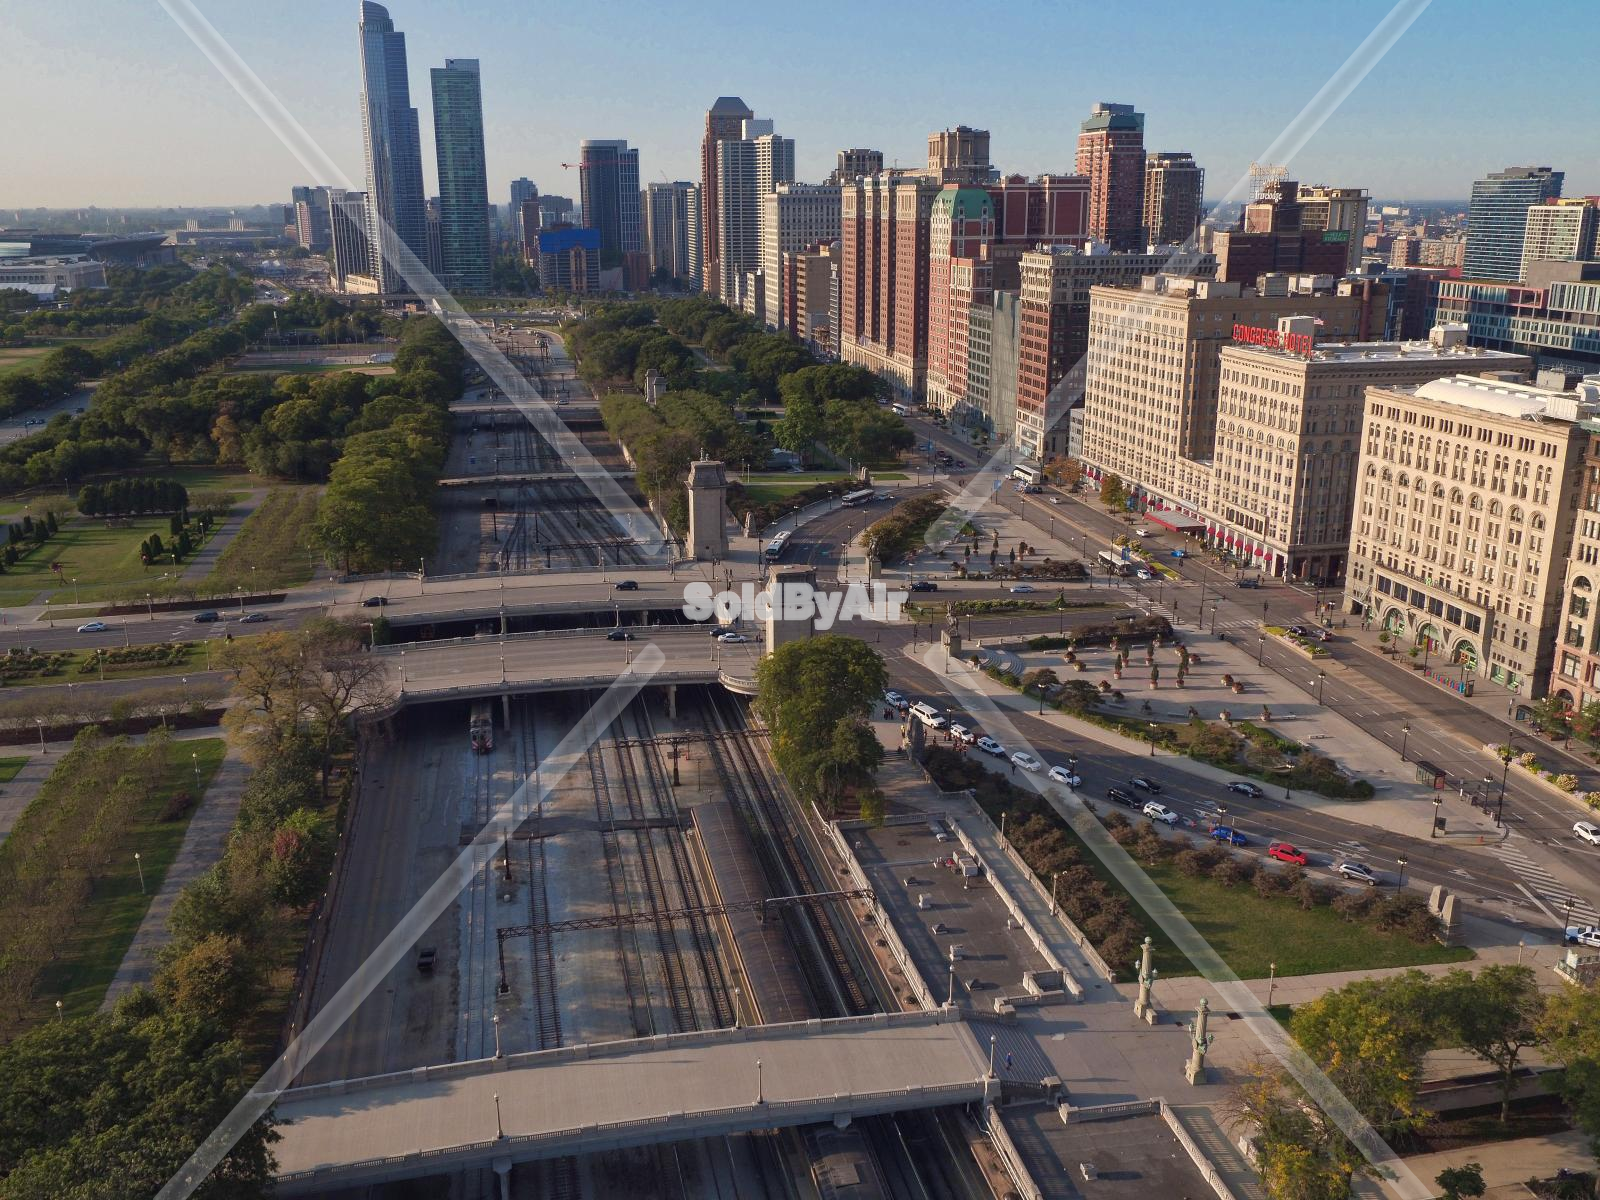 Drone Photo of Michigan Av & Grant Park & South Loop in Chicago Illinois